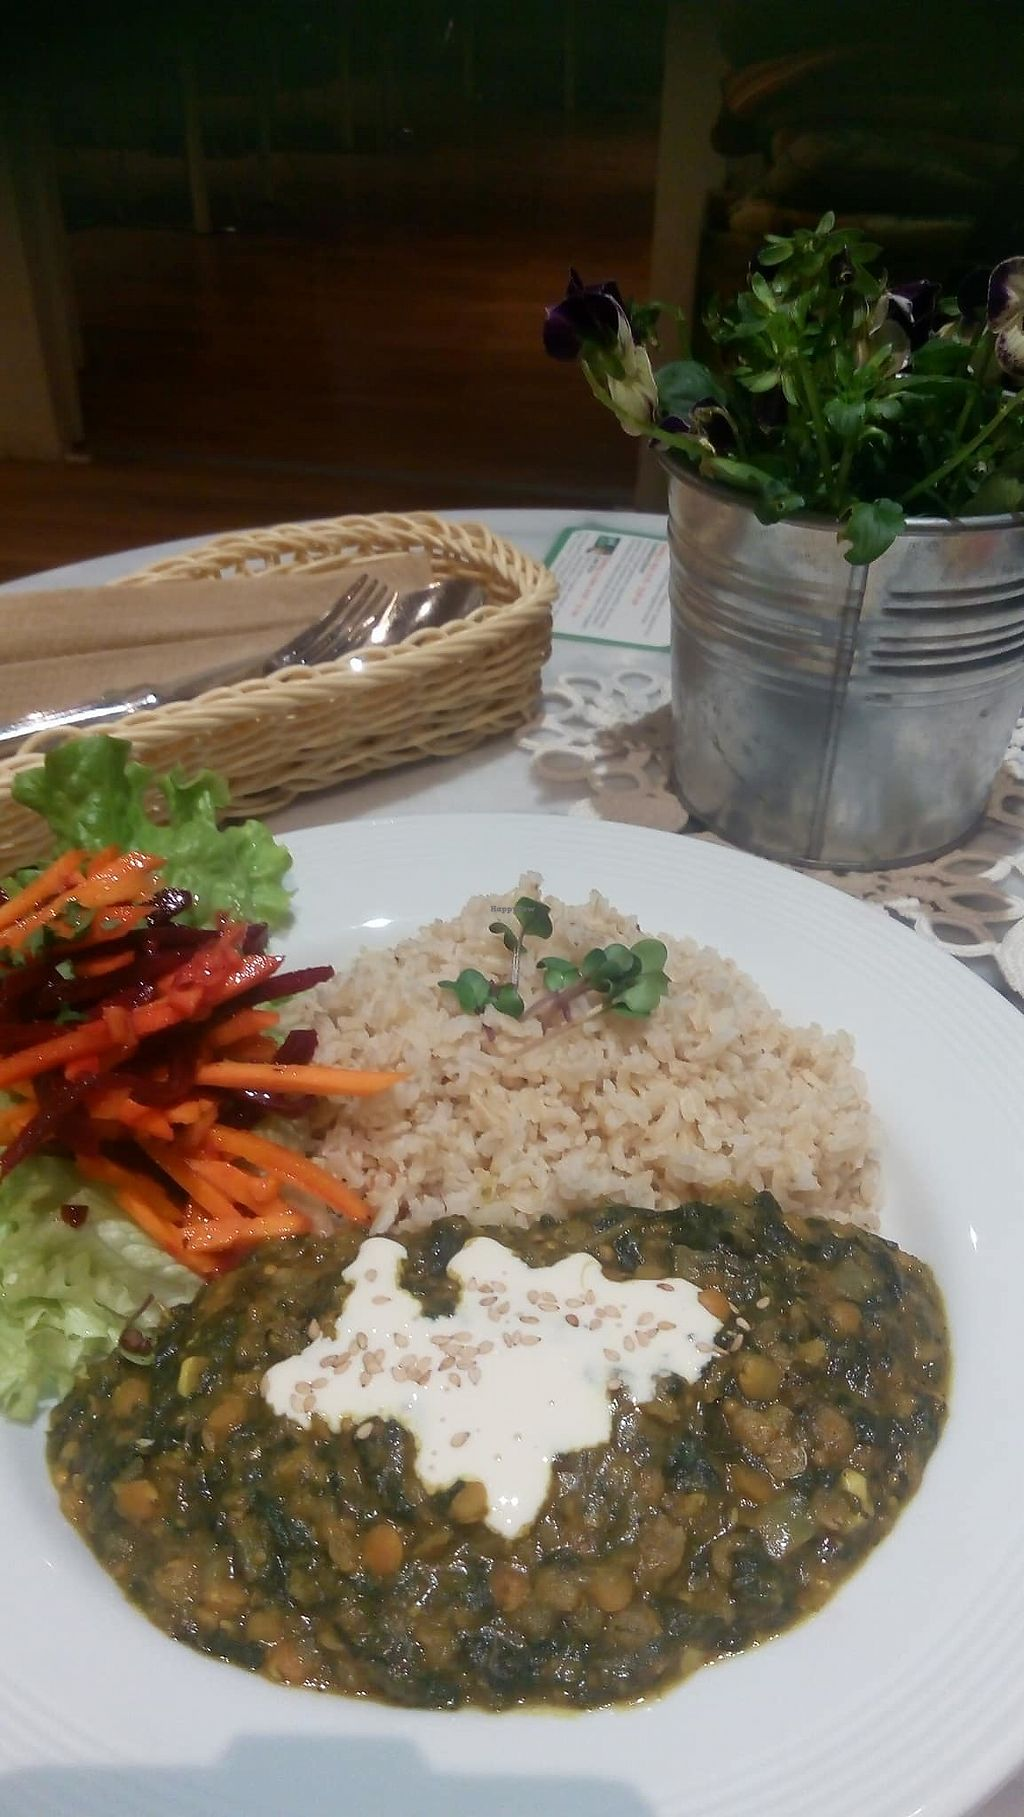 """Photo of Lesecafe Anstandig essen  by <a href=""""/members/profile/vegan.goddammit"""">vegan.goddammit</a> <br/>Sri Lanka dhal <br/> March 25, 2018  - <a href='/contact/abuse/image/35157/375759'>Report</a>"""